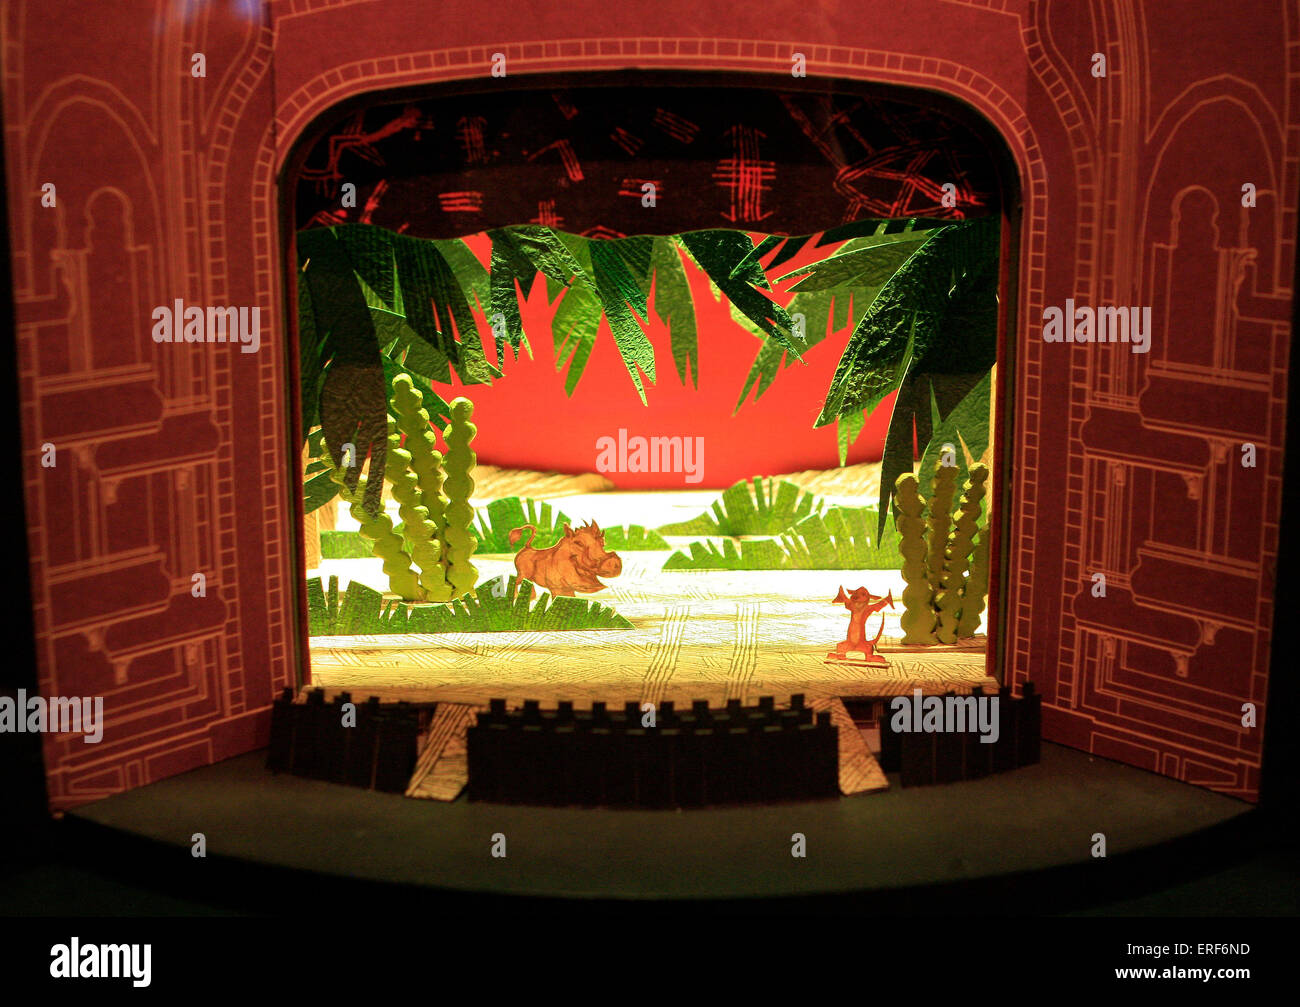 Stage Set Design Model On Display At The Inside The Lion King The Stock Photo Alamy